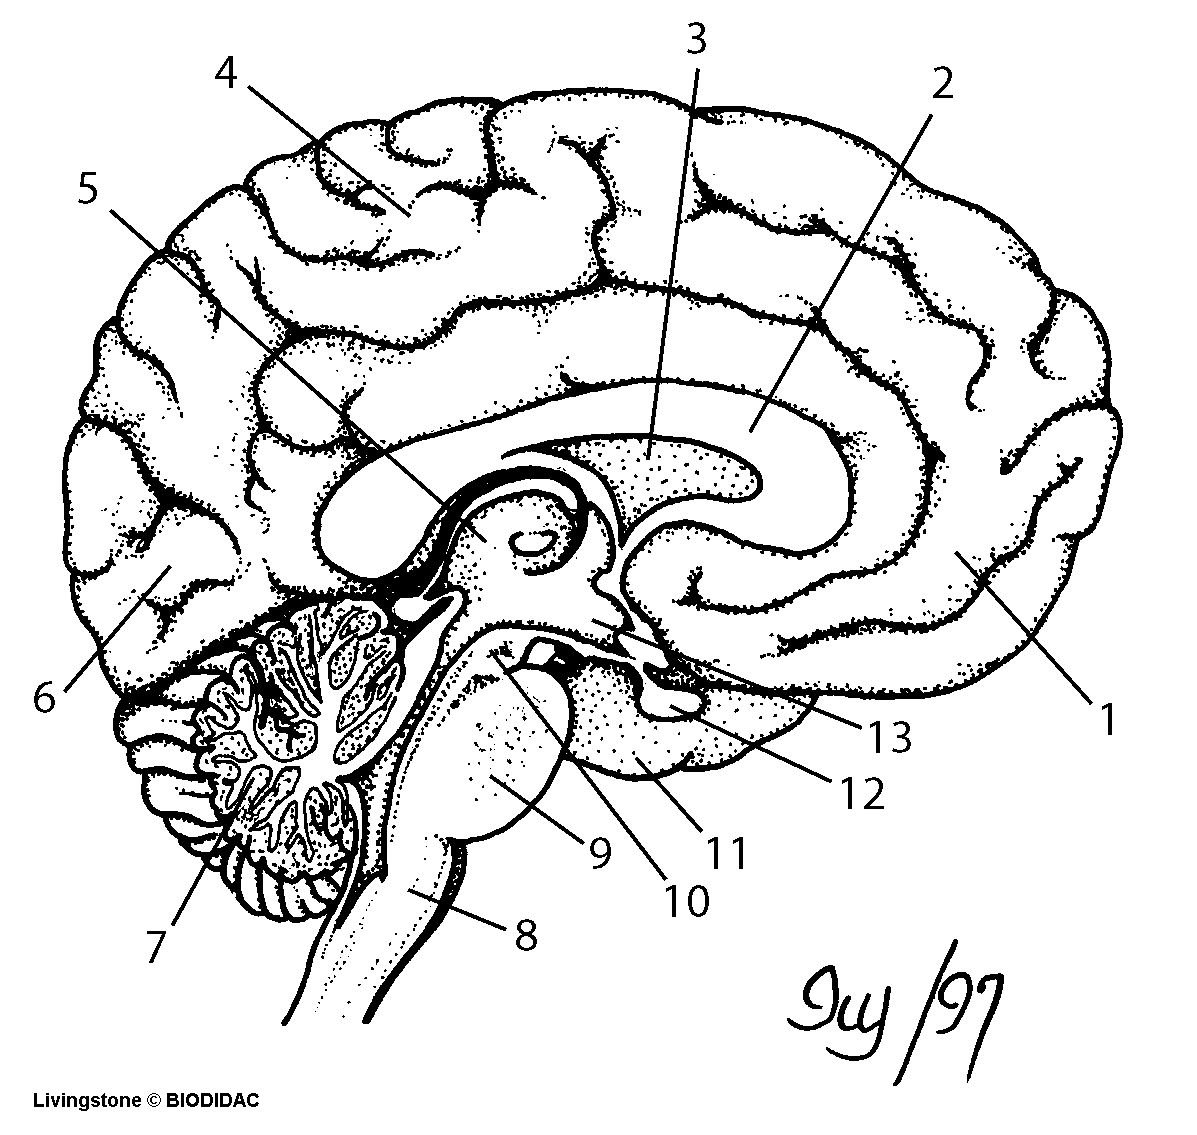 1197x1135 Brain Anatomy Diagram Unlabeled